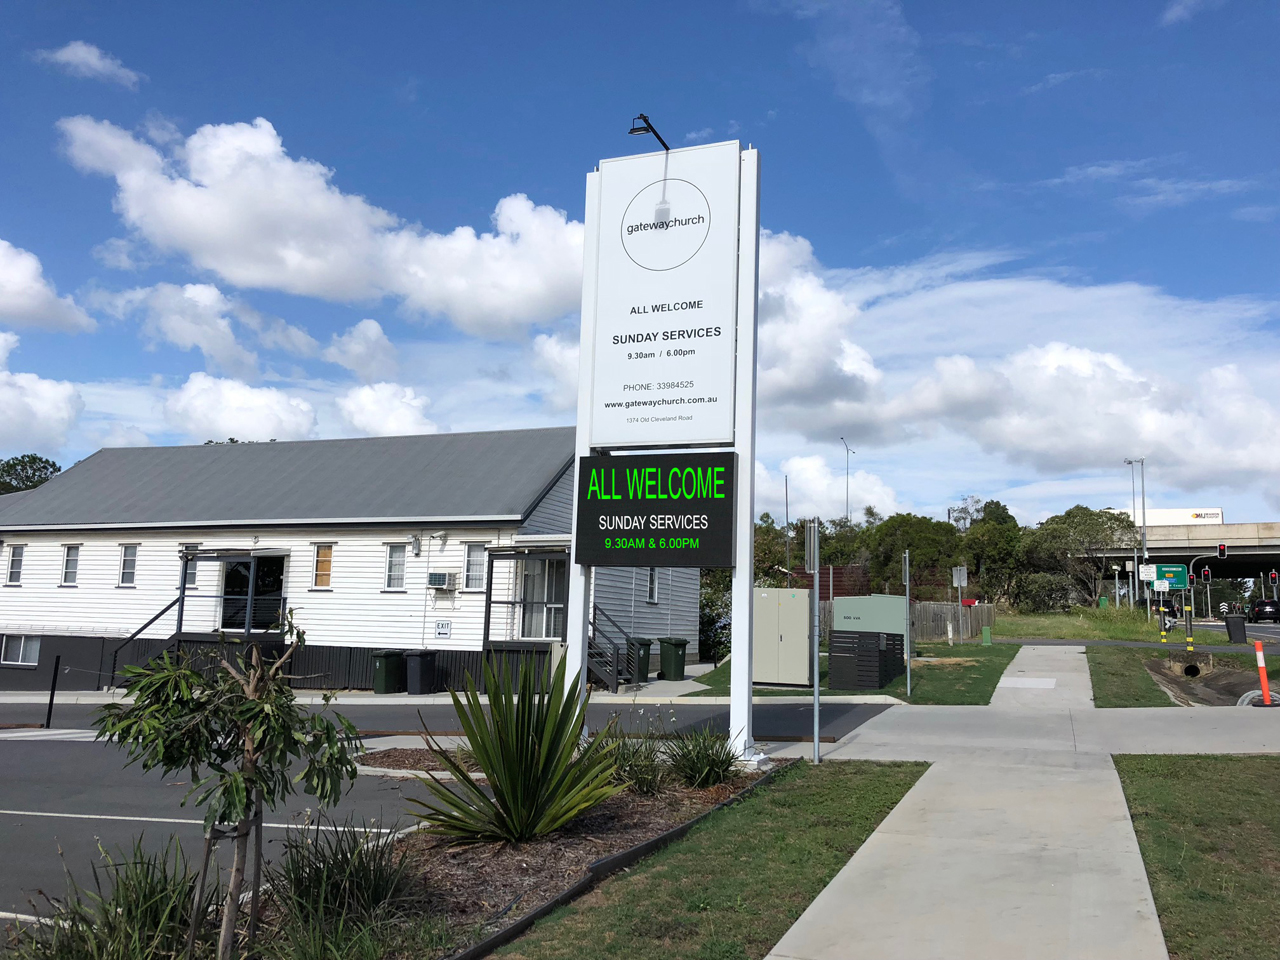 Gateway Church - Carindale - Double Sided LED Sign